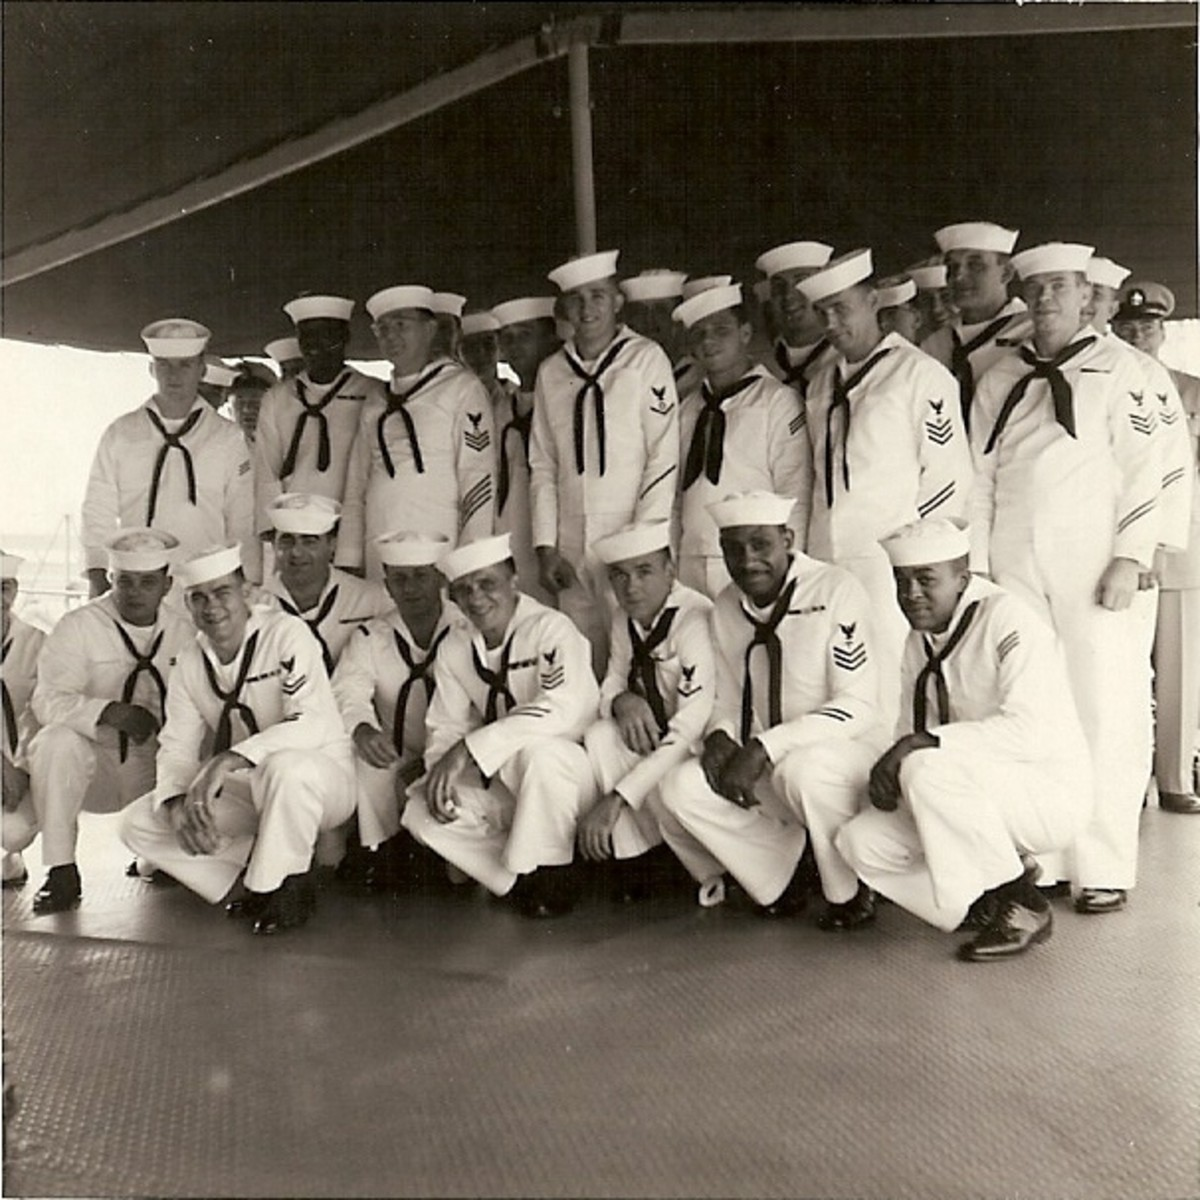 Crew of the USS Allegheny in 1958 or 1959